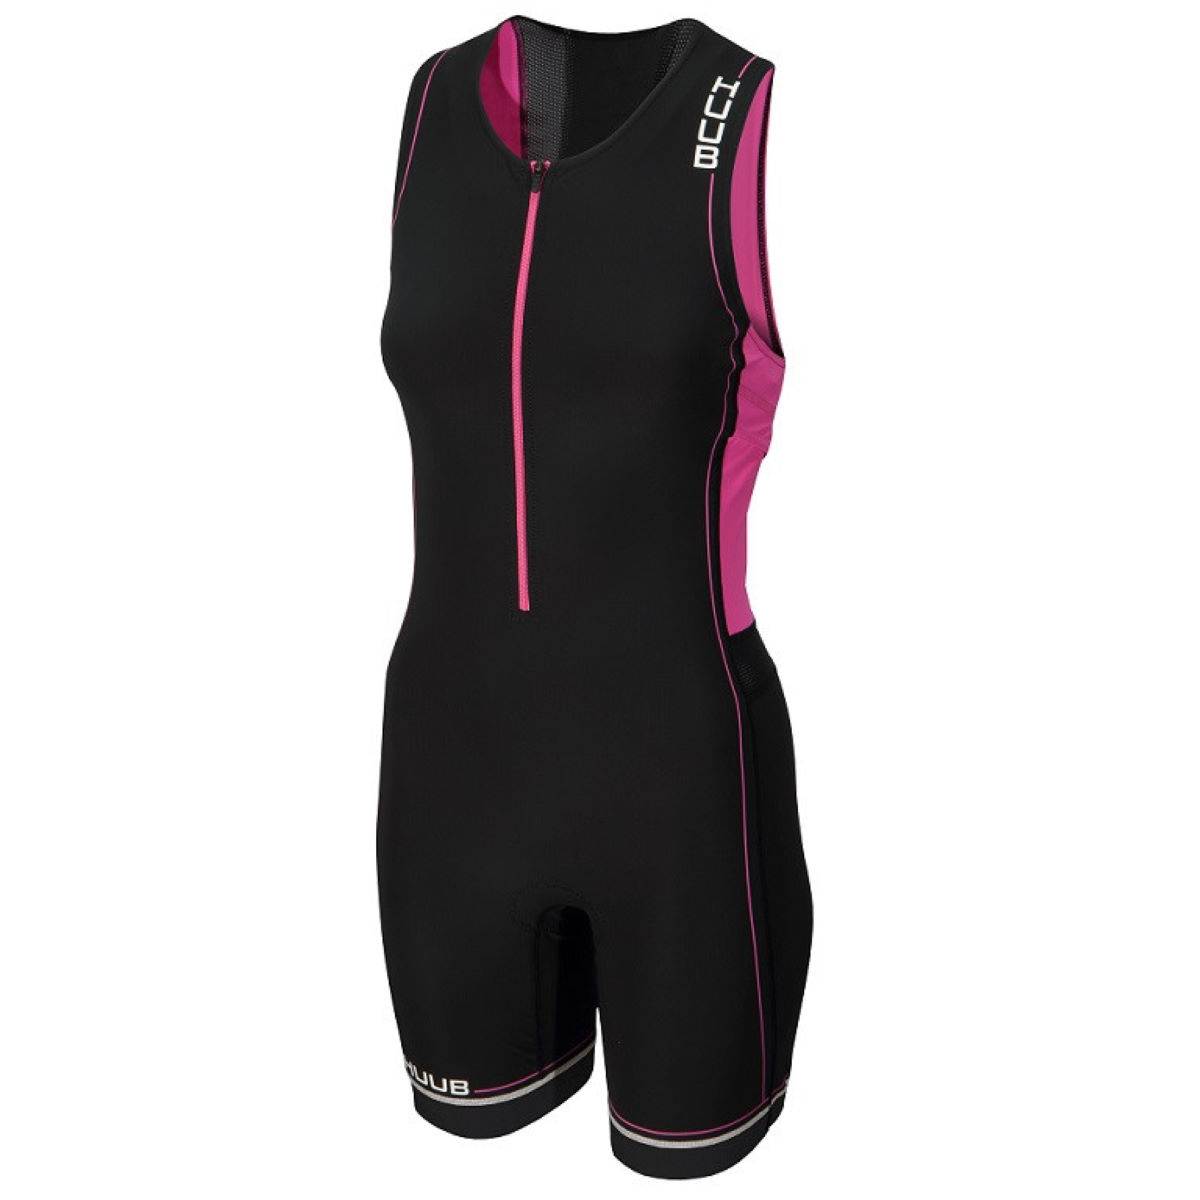 HUUB Women's Core Tri Suit - Large Black/Pink | Tri Suits